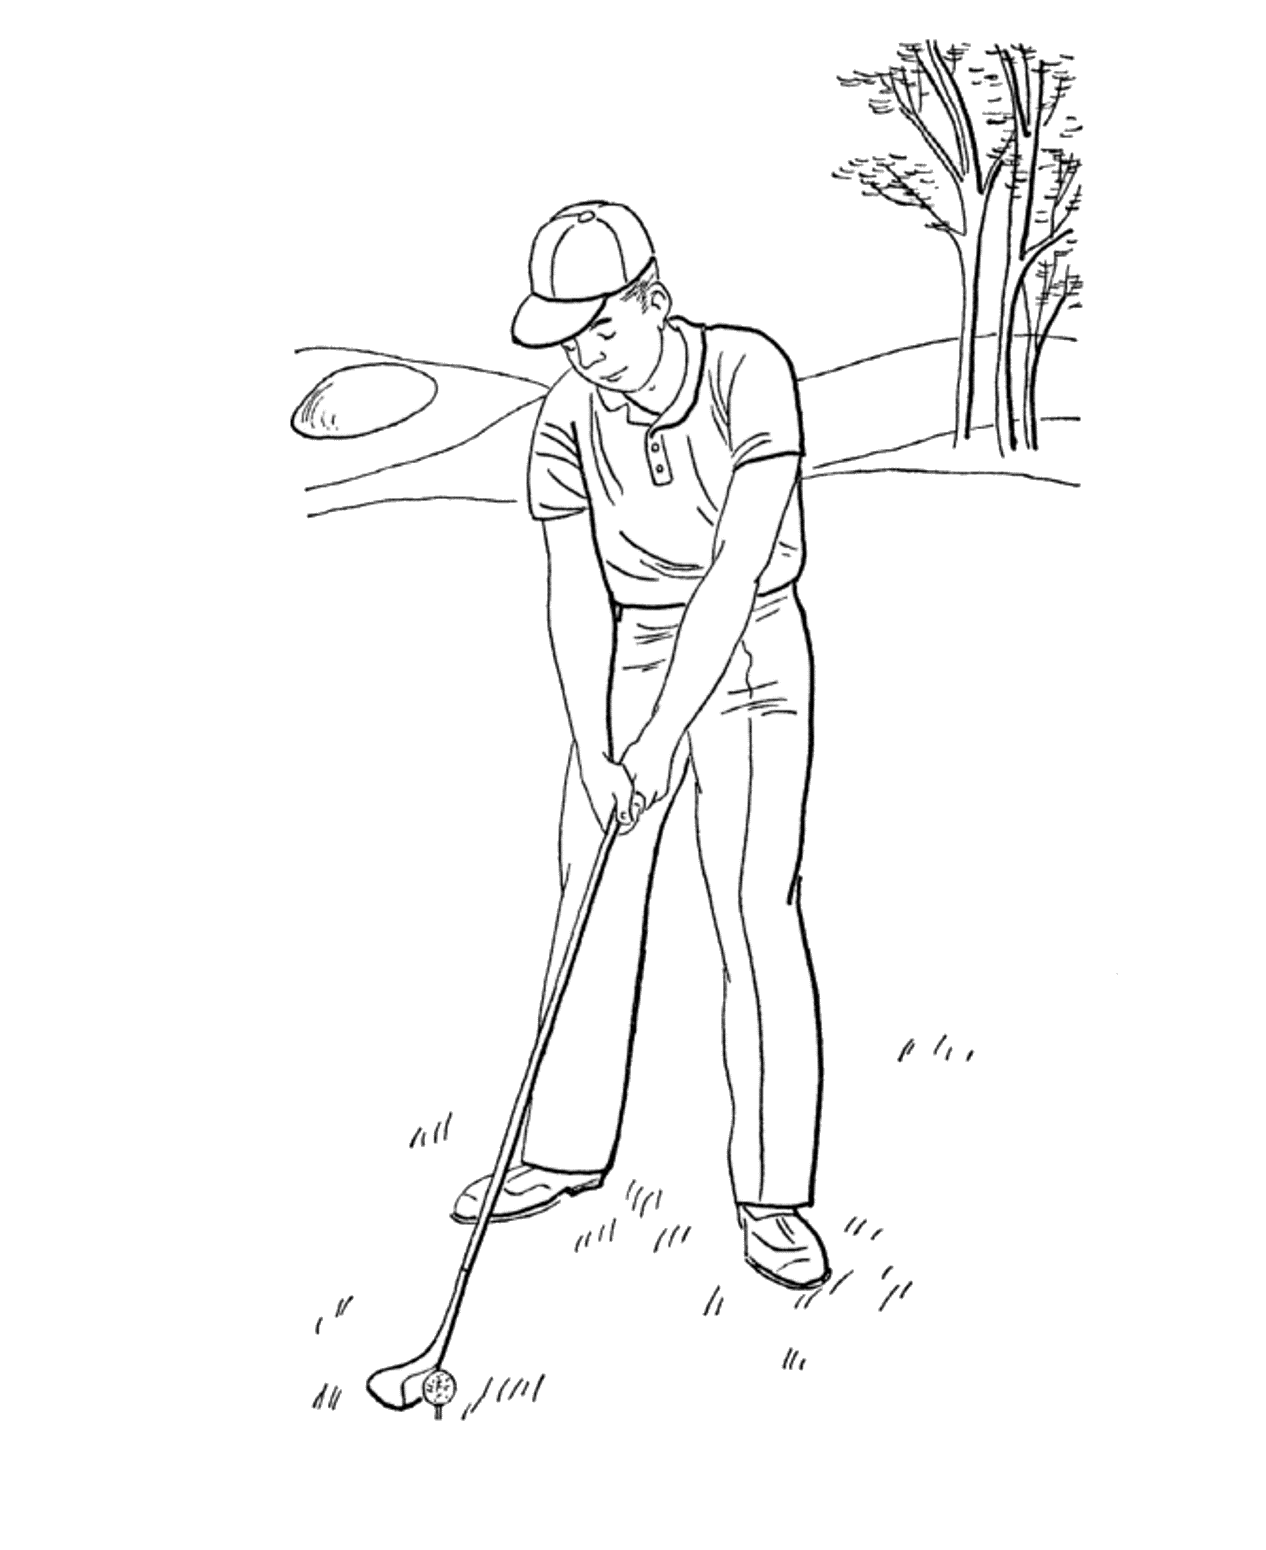 minion golf coloring page golf coloring pages toddler coloring book sports golf page minion coloring